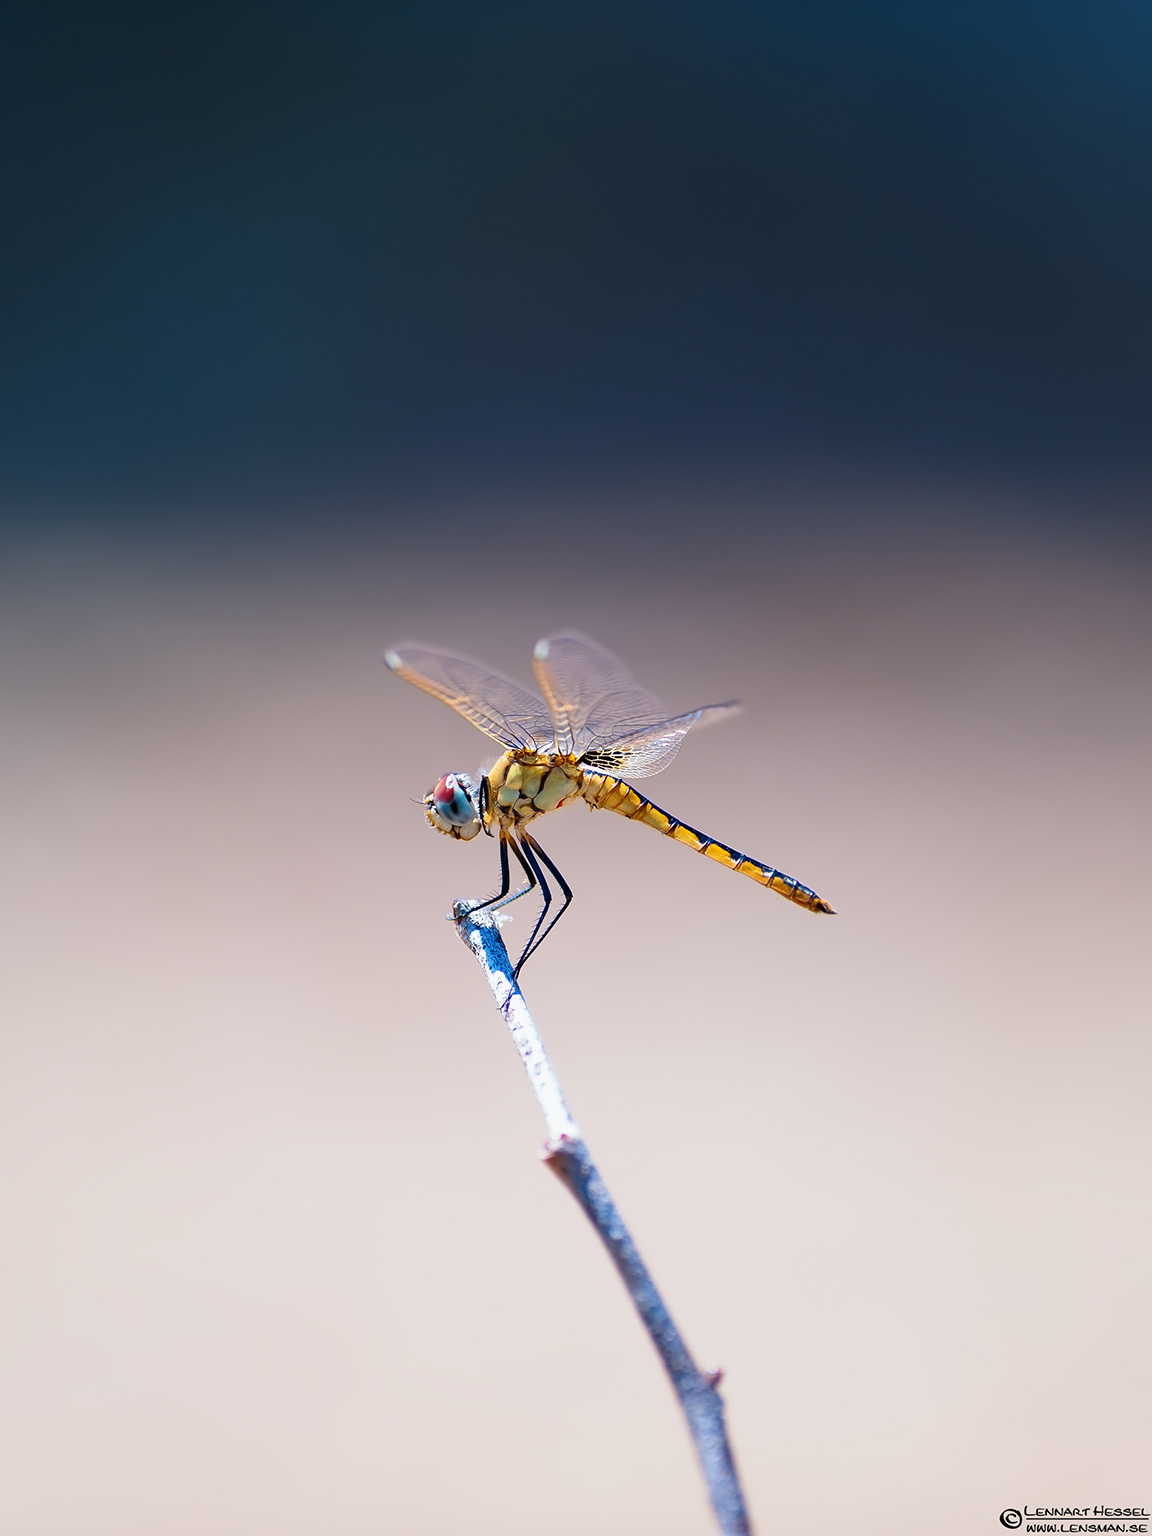 Dragonfly Moremi Game Reserve, Botswana cover